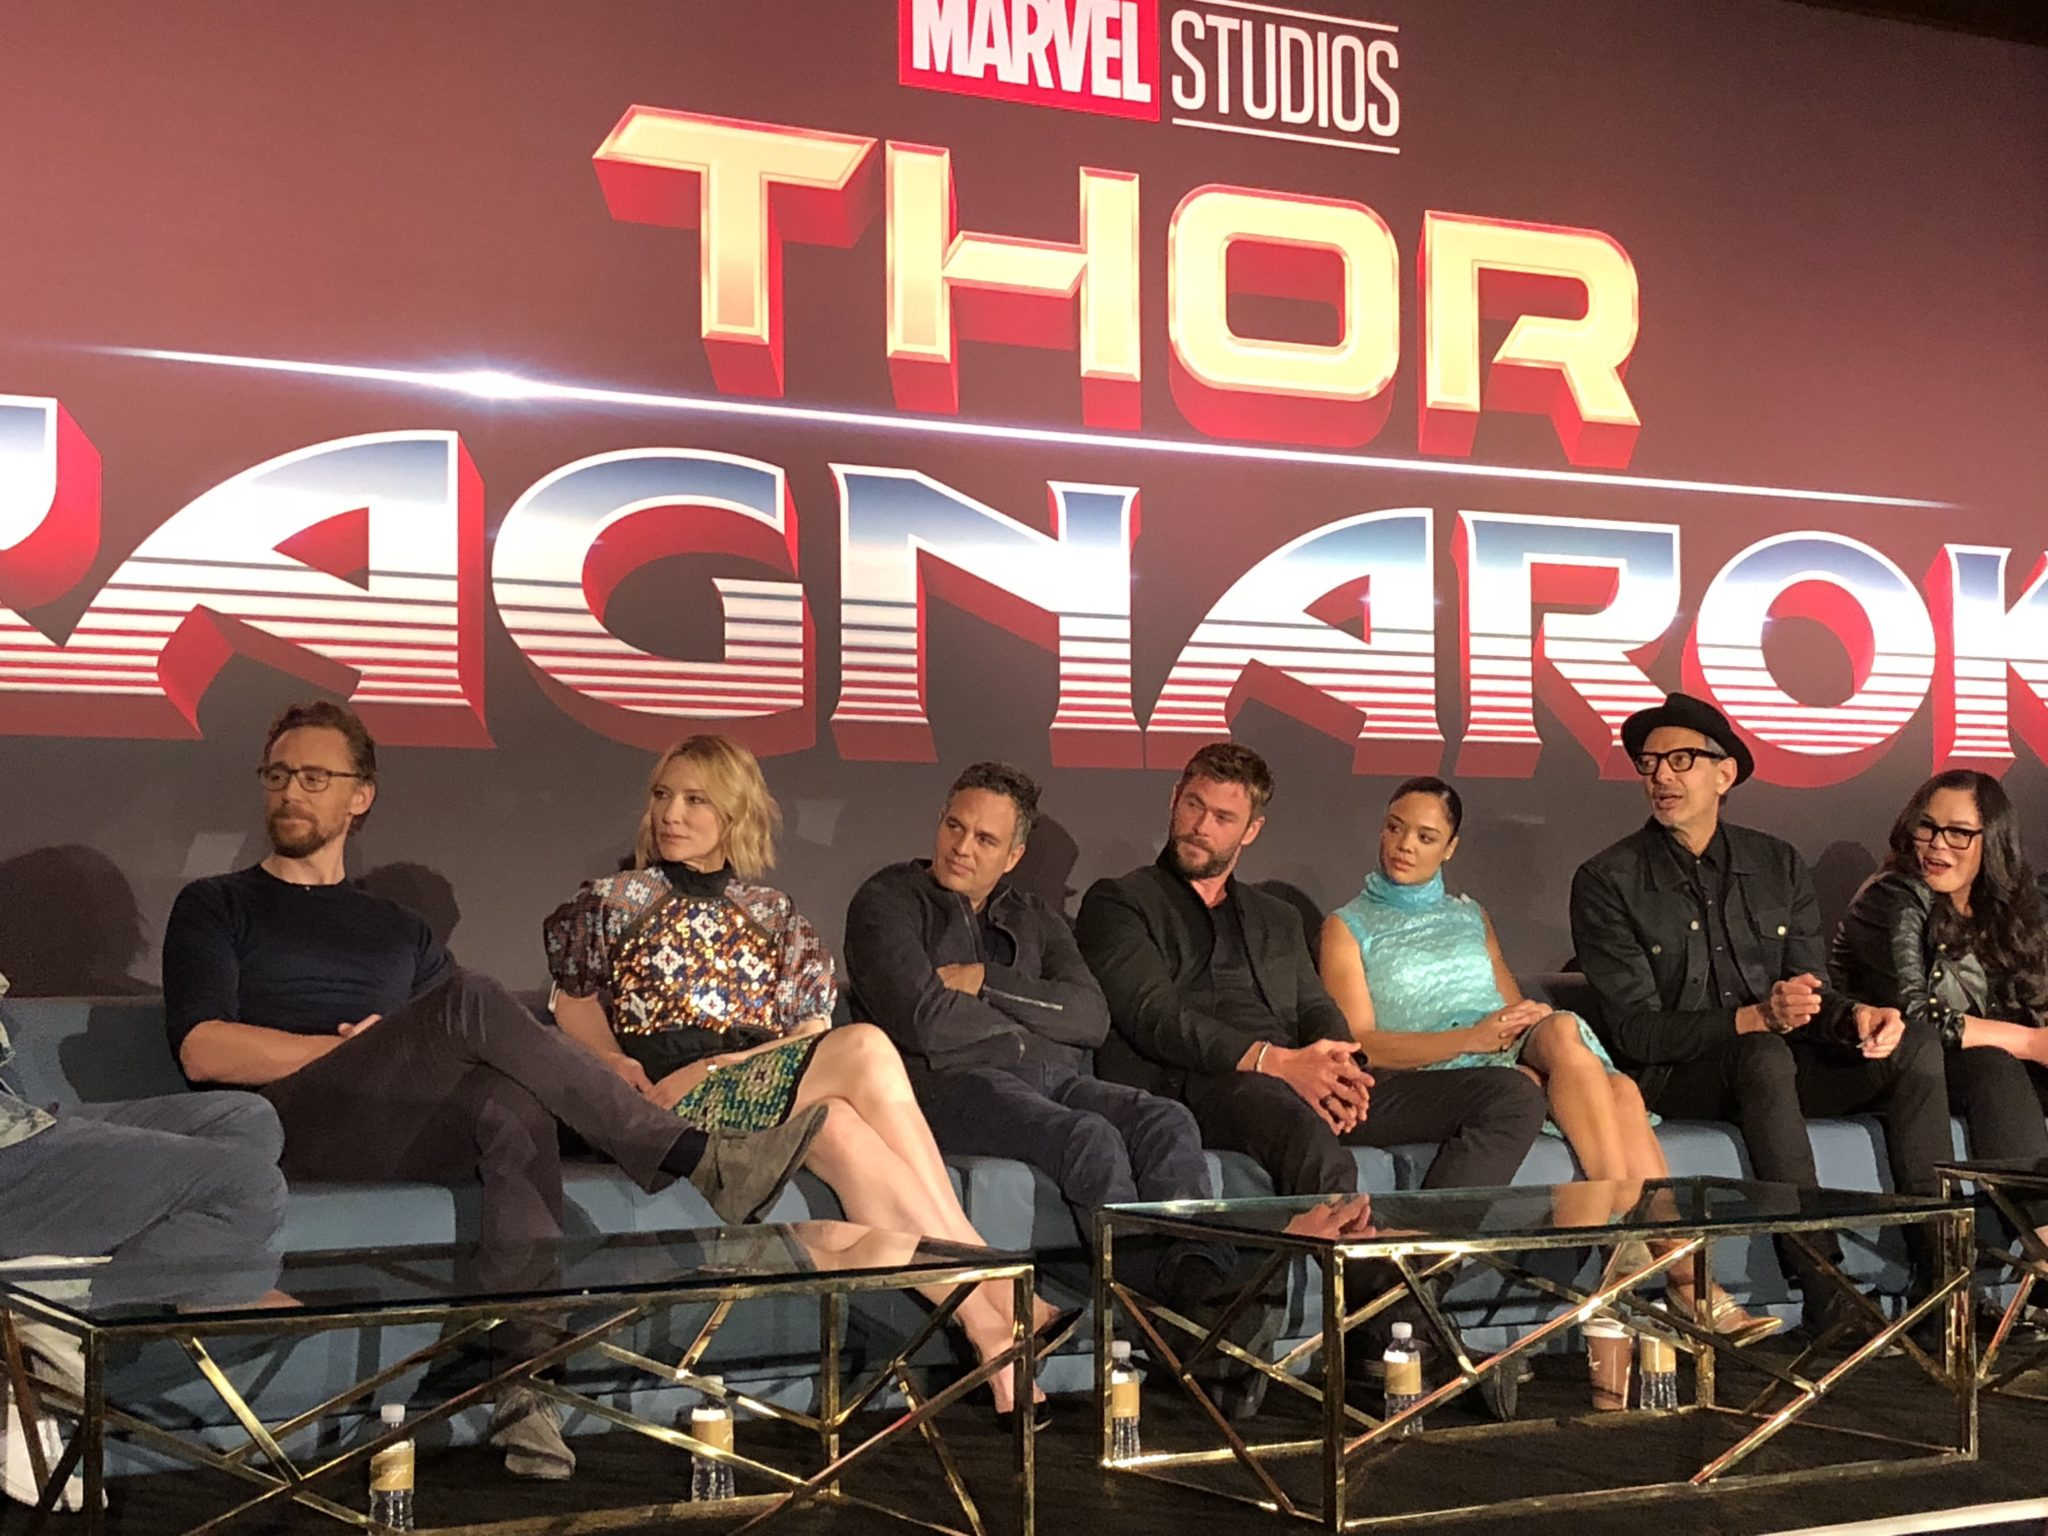 A Chat with the Cast & Crew of Marvel's Thor: Ragnarok 2